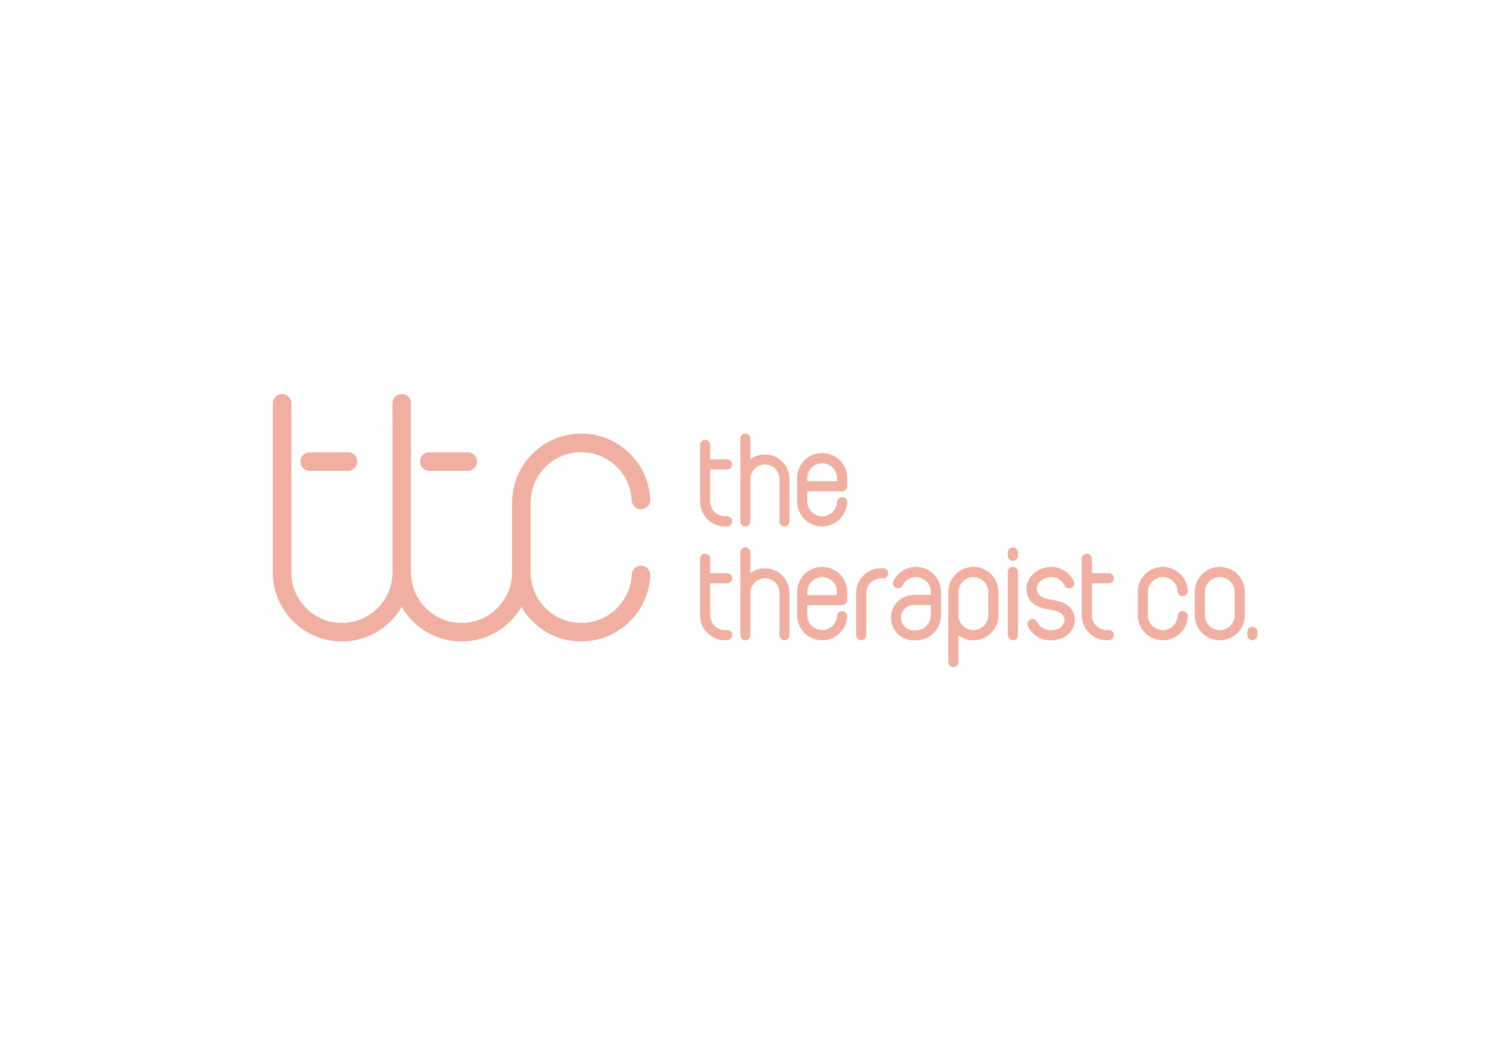 The therapist co.